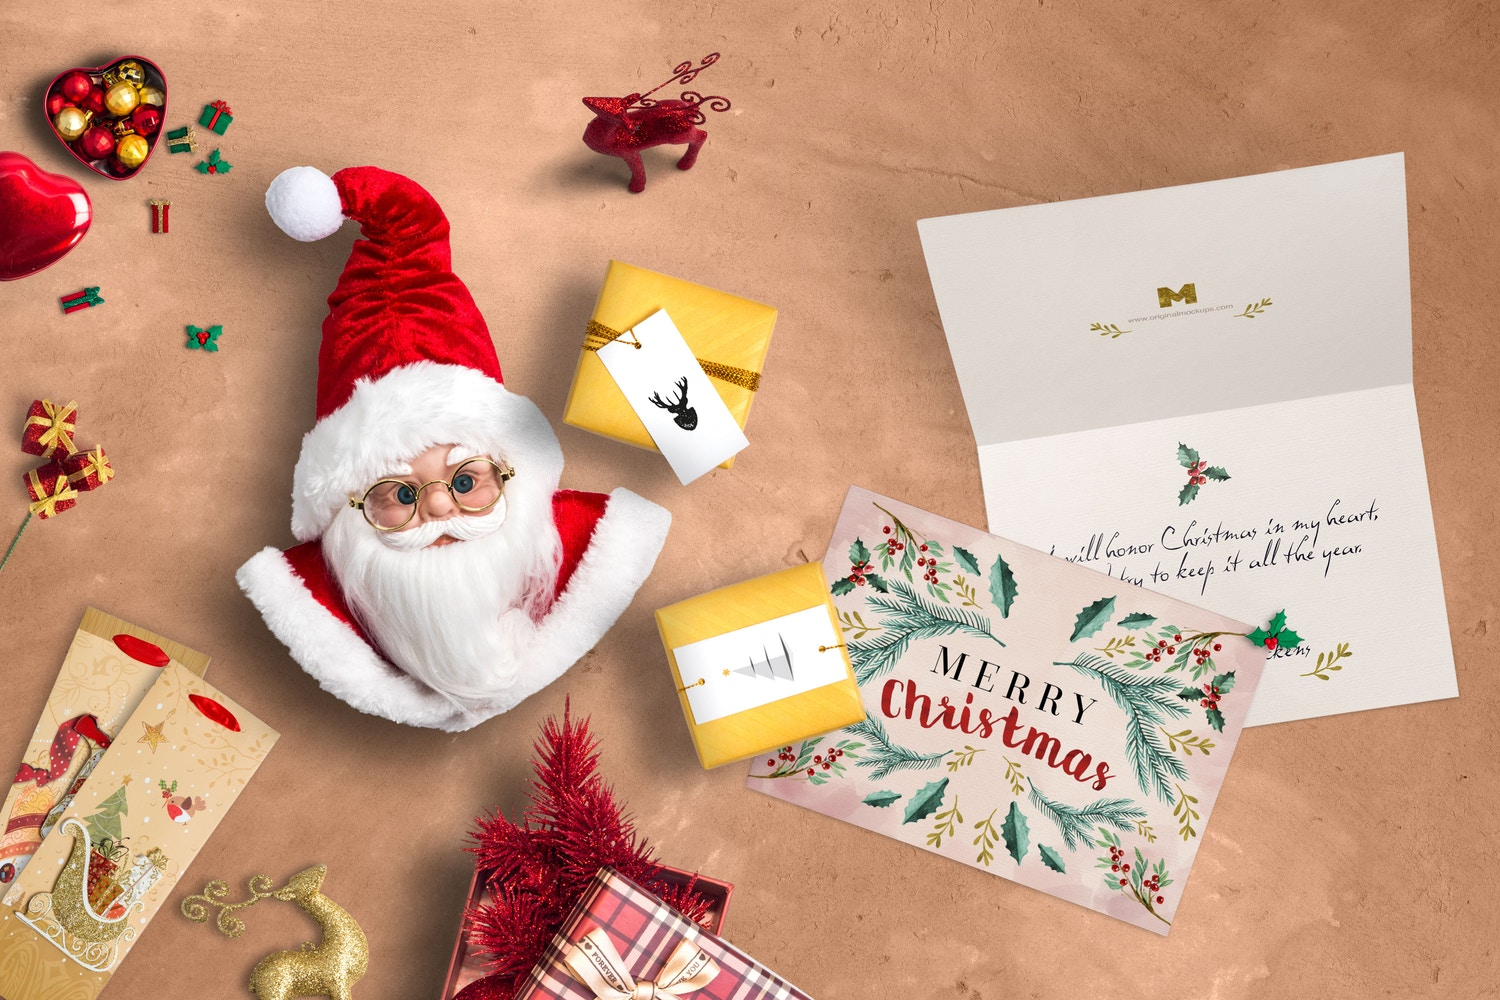 Christmas Header And Hero Scene Mockup 05 por Original Mockups en Original Mockups